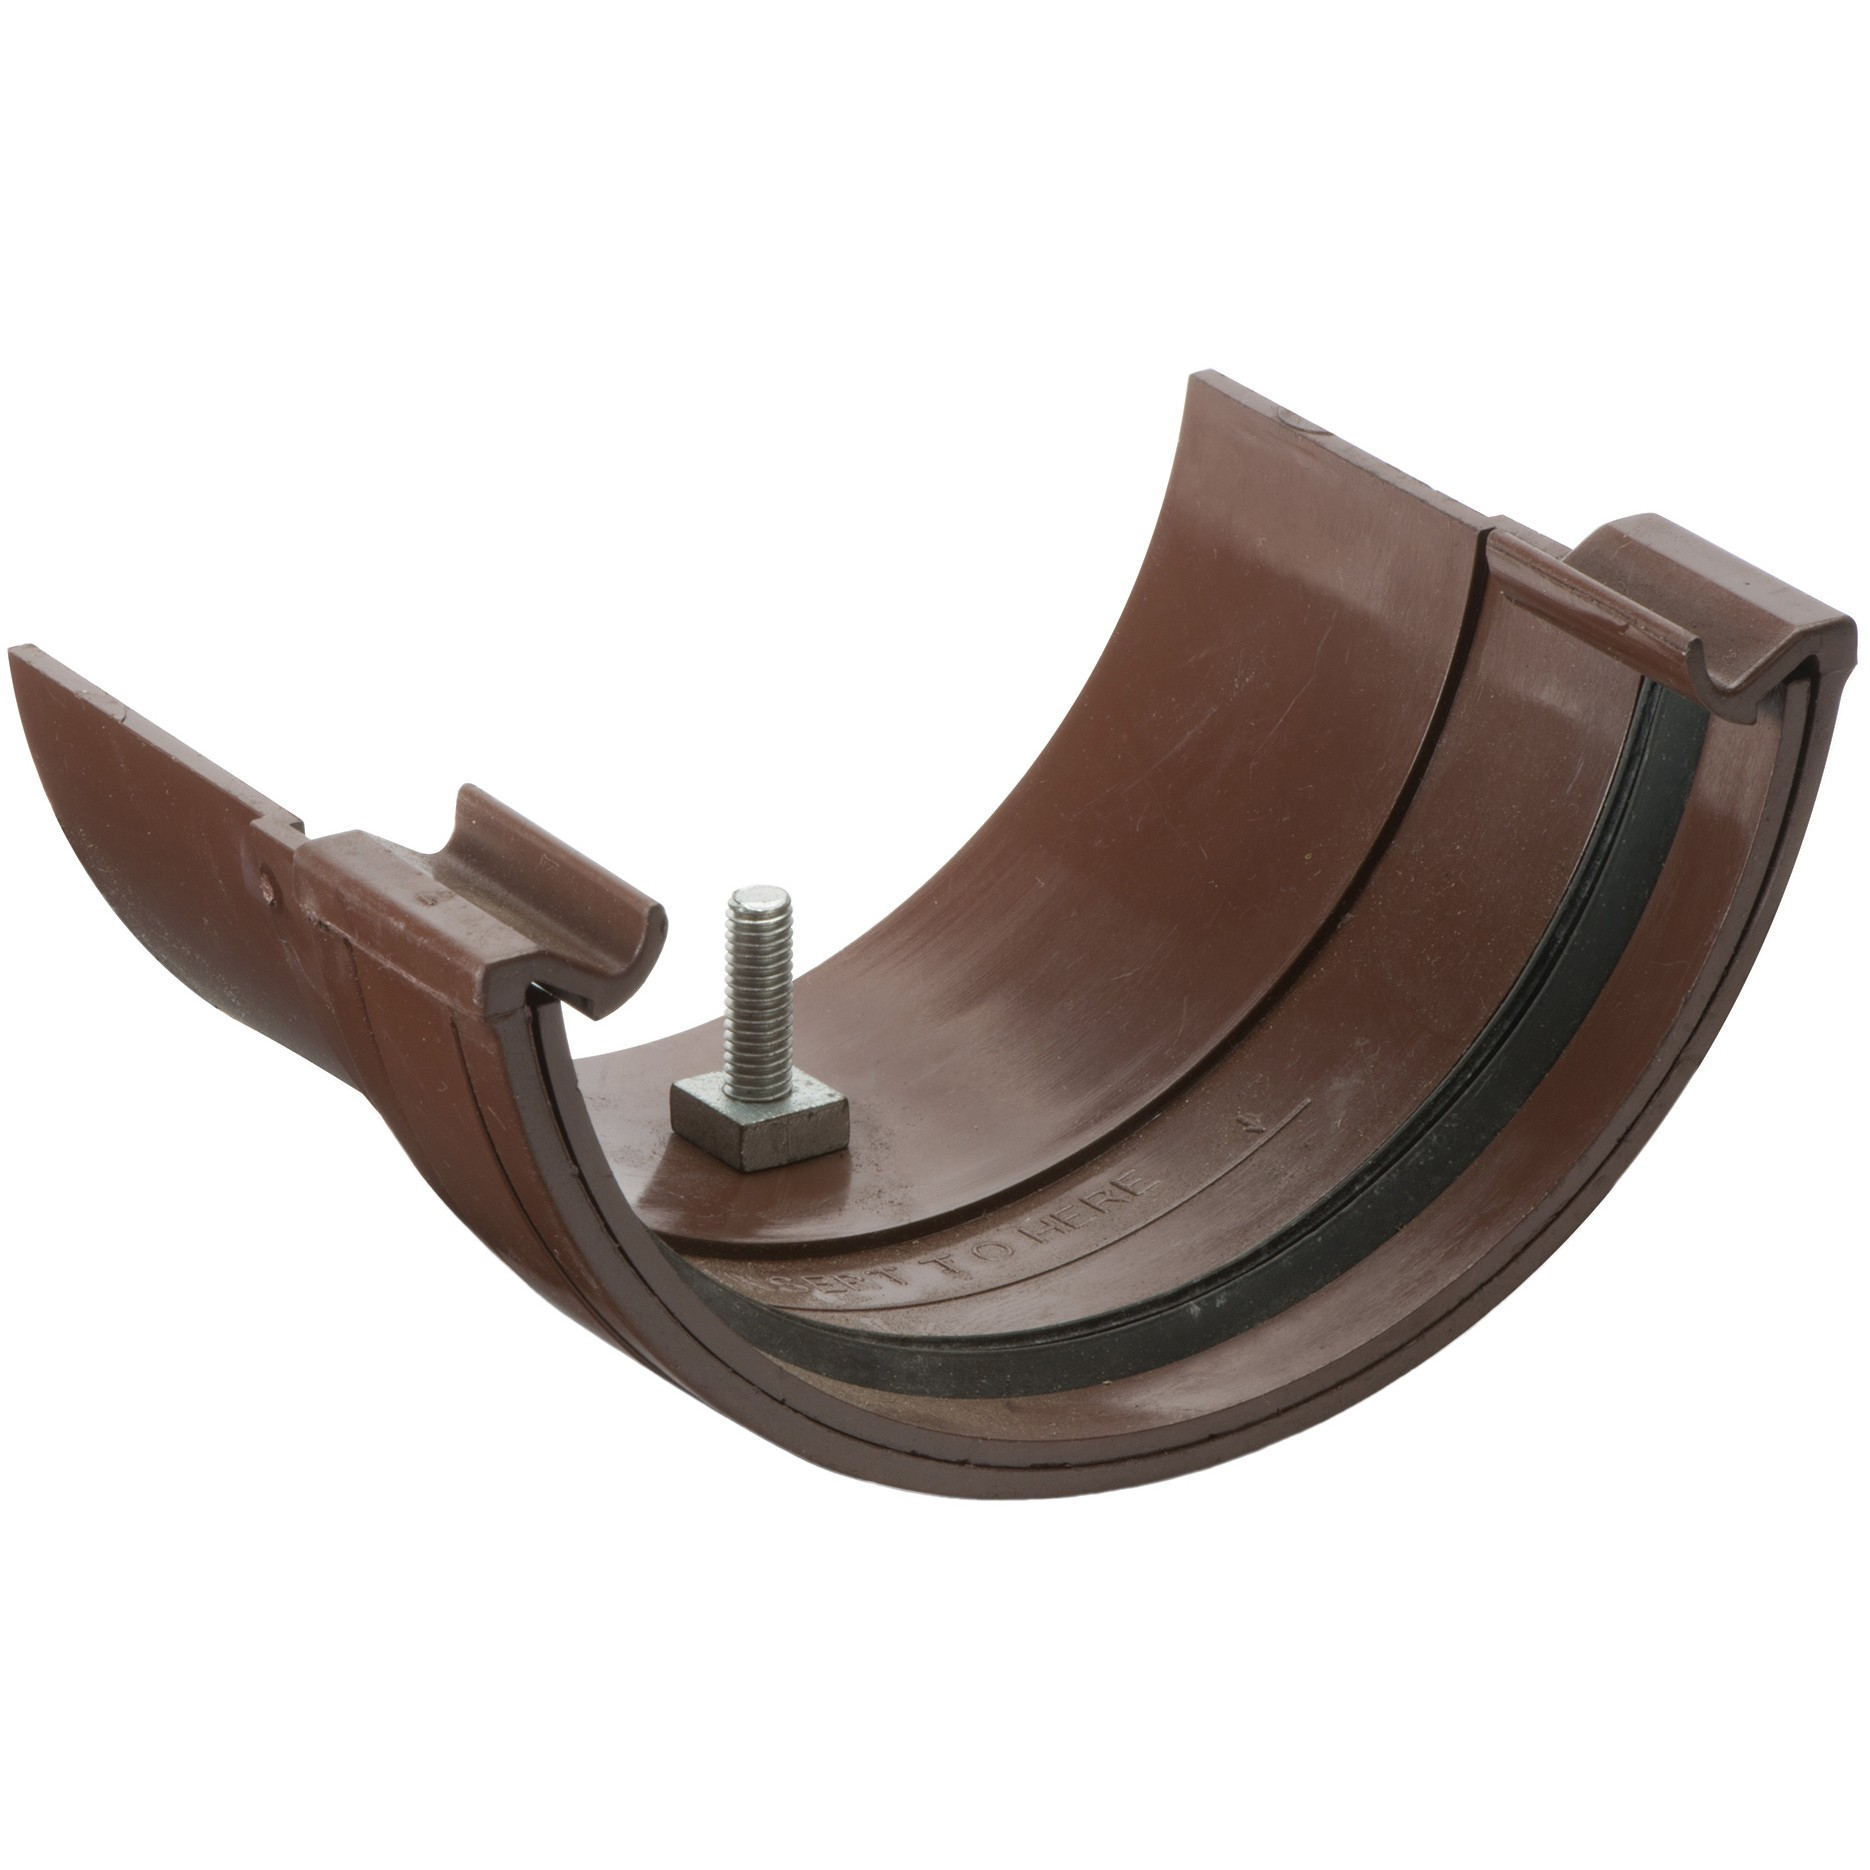 Polypipe 112mm Half Round to Metal Half Round Gutter Adaptor - Brown